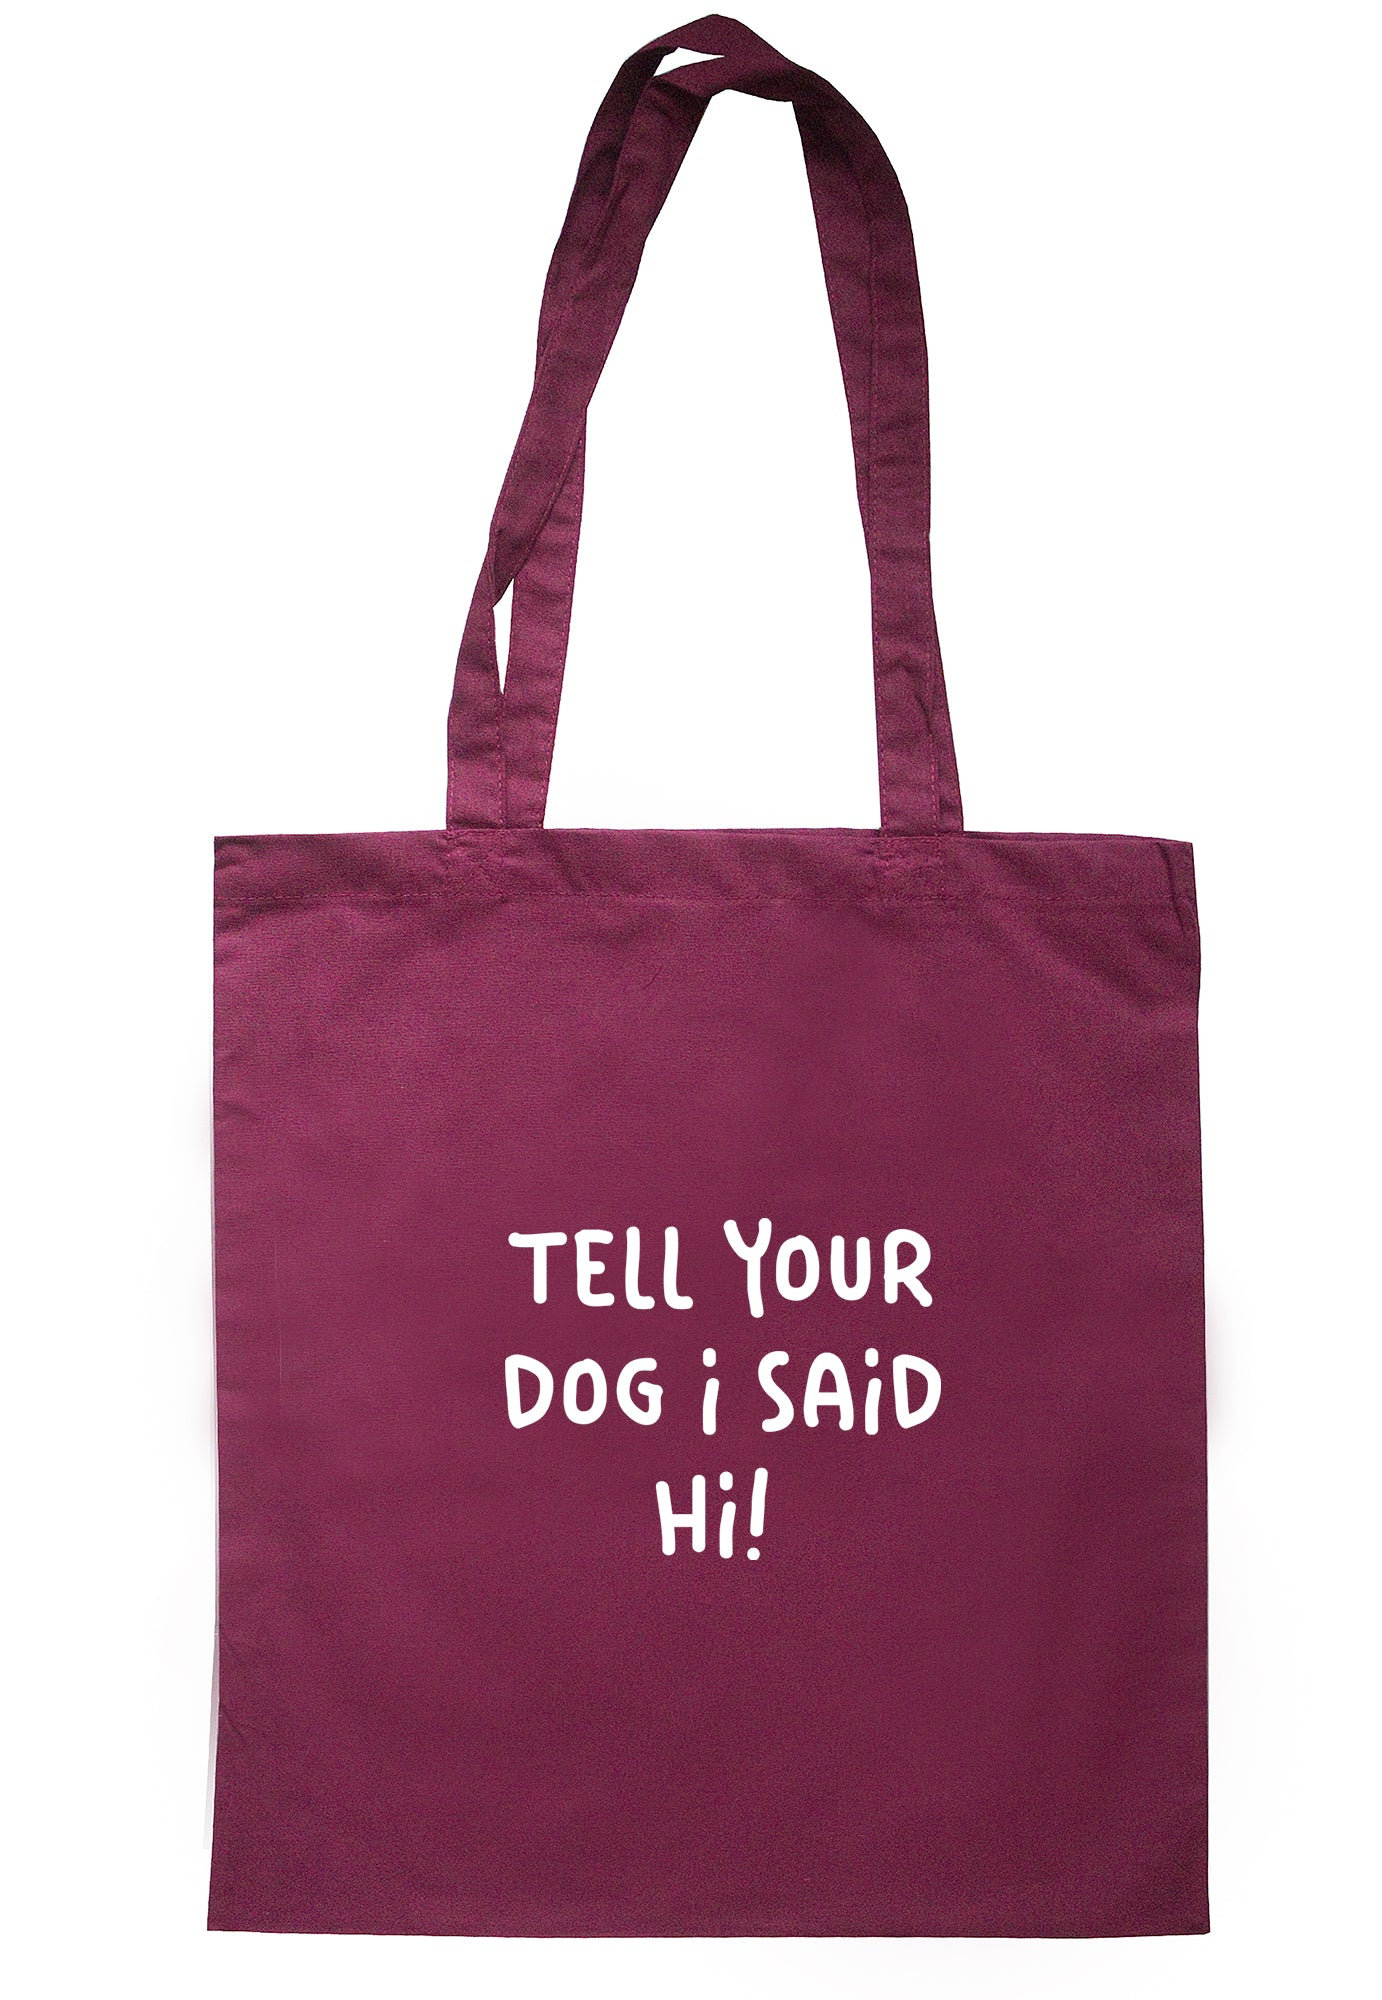 Tell Your Dog I Said Hi! Tote Bag S1184 - Illustrated Identity Ltd.